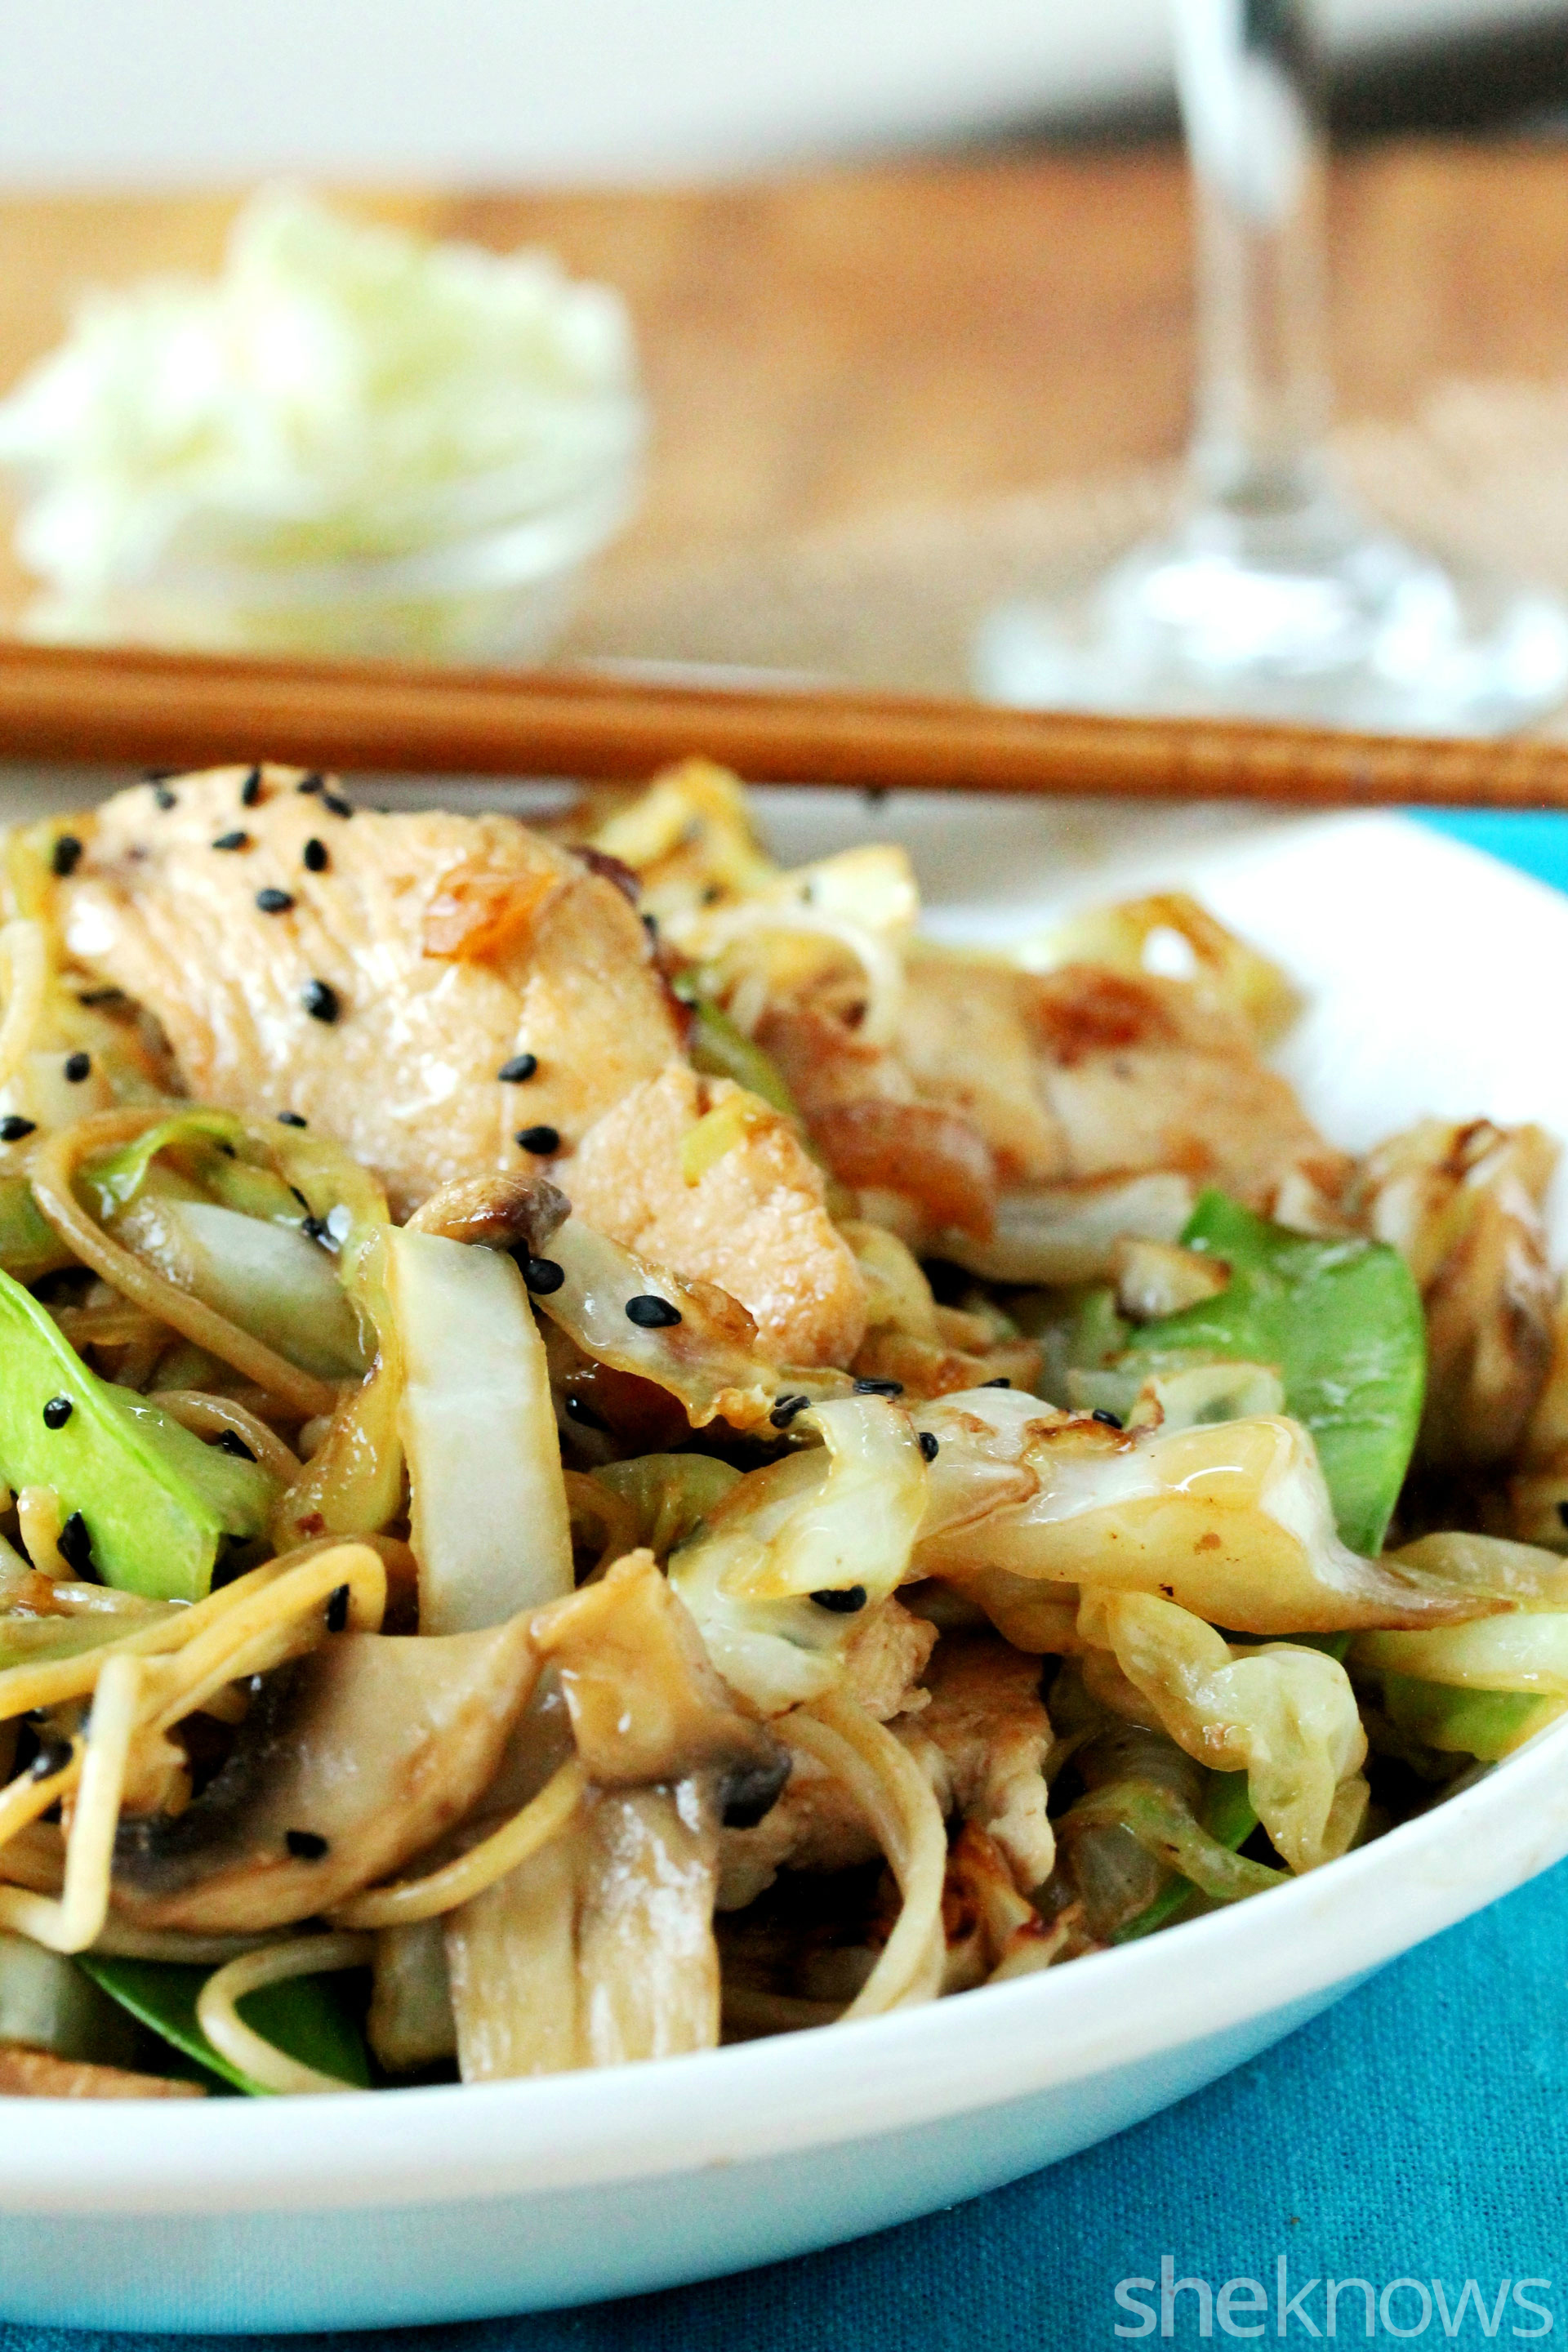 Cabbage stir fry with wheat pasta